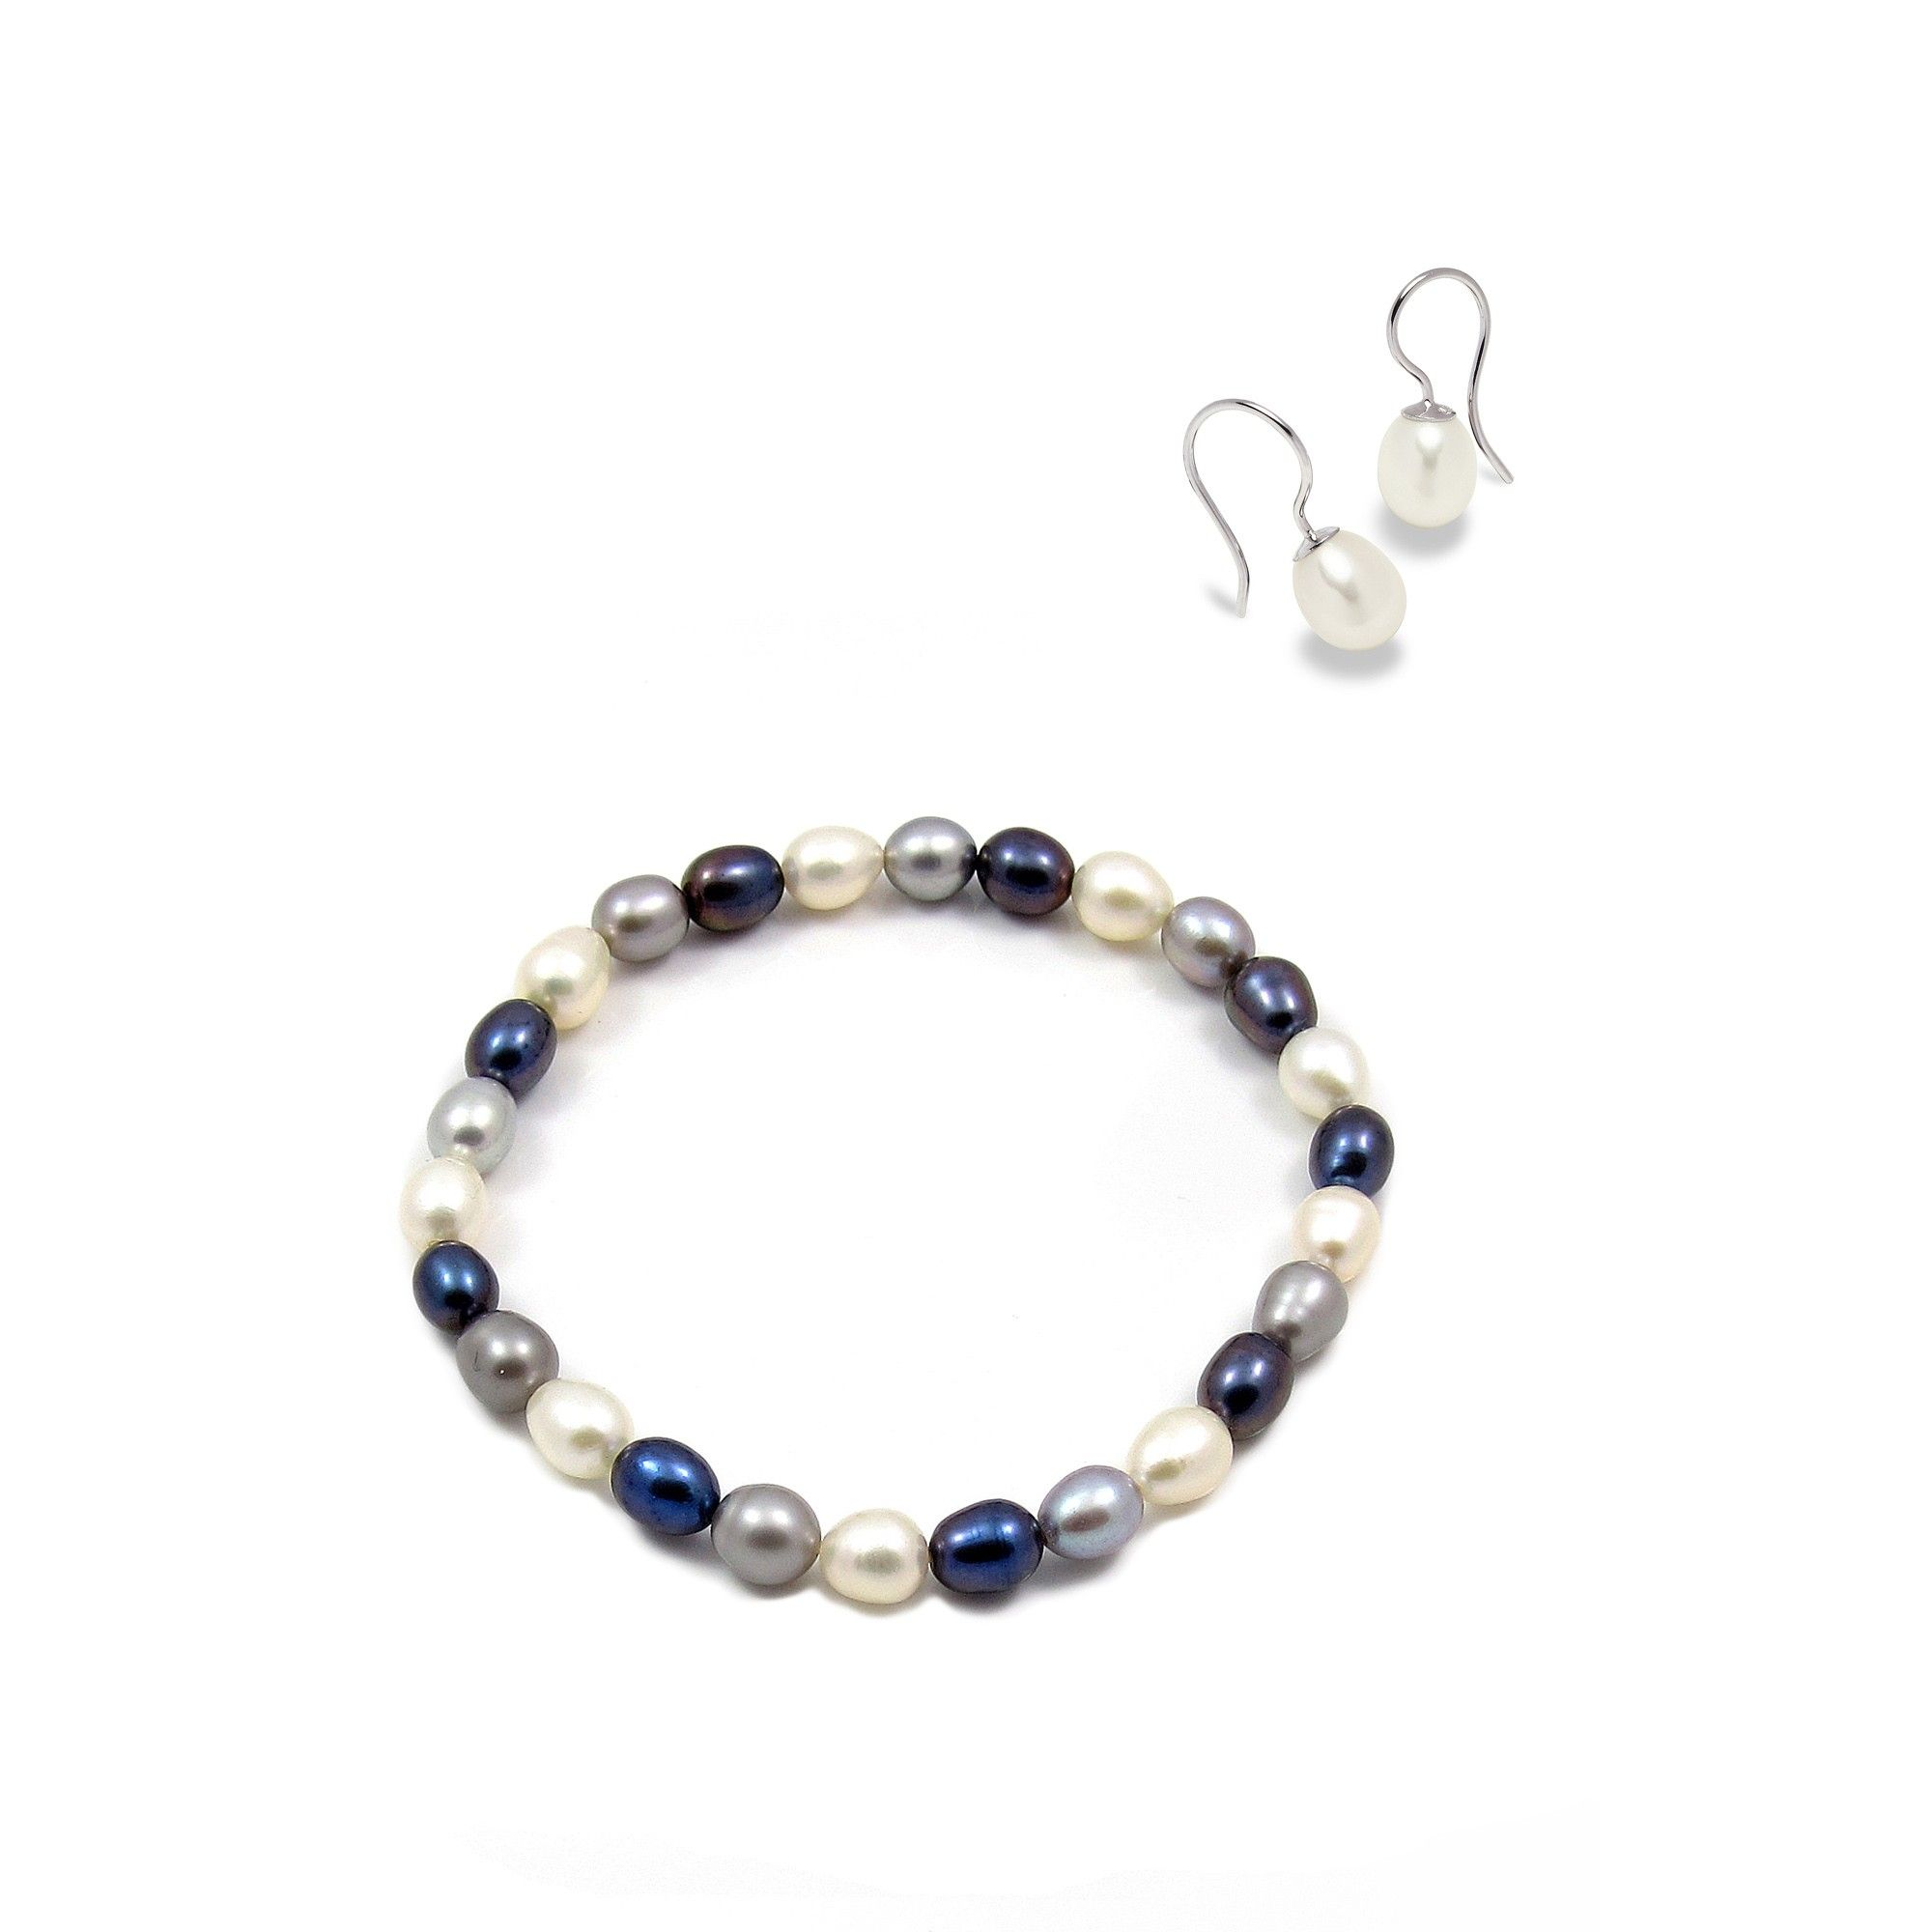 indigo pearls watches free set overstock necklace sterling silver ringed shipping jewelry today product com freshwater earring pearl in bracelets